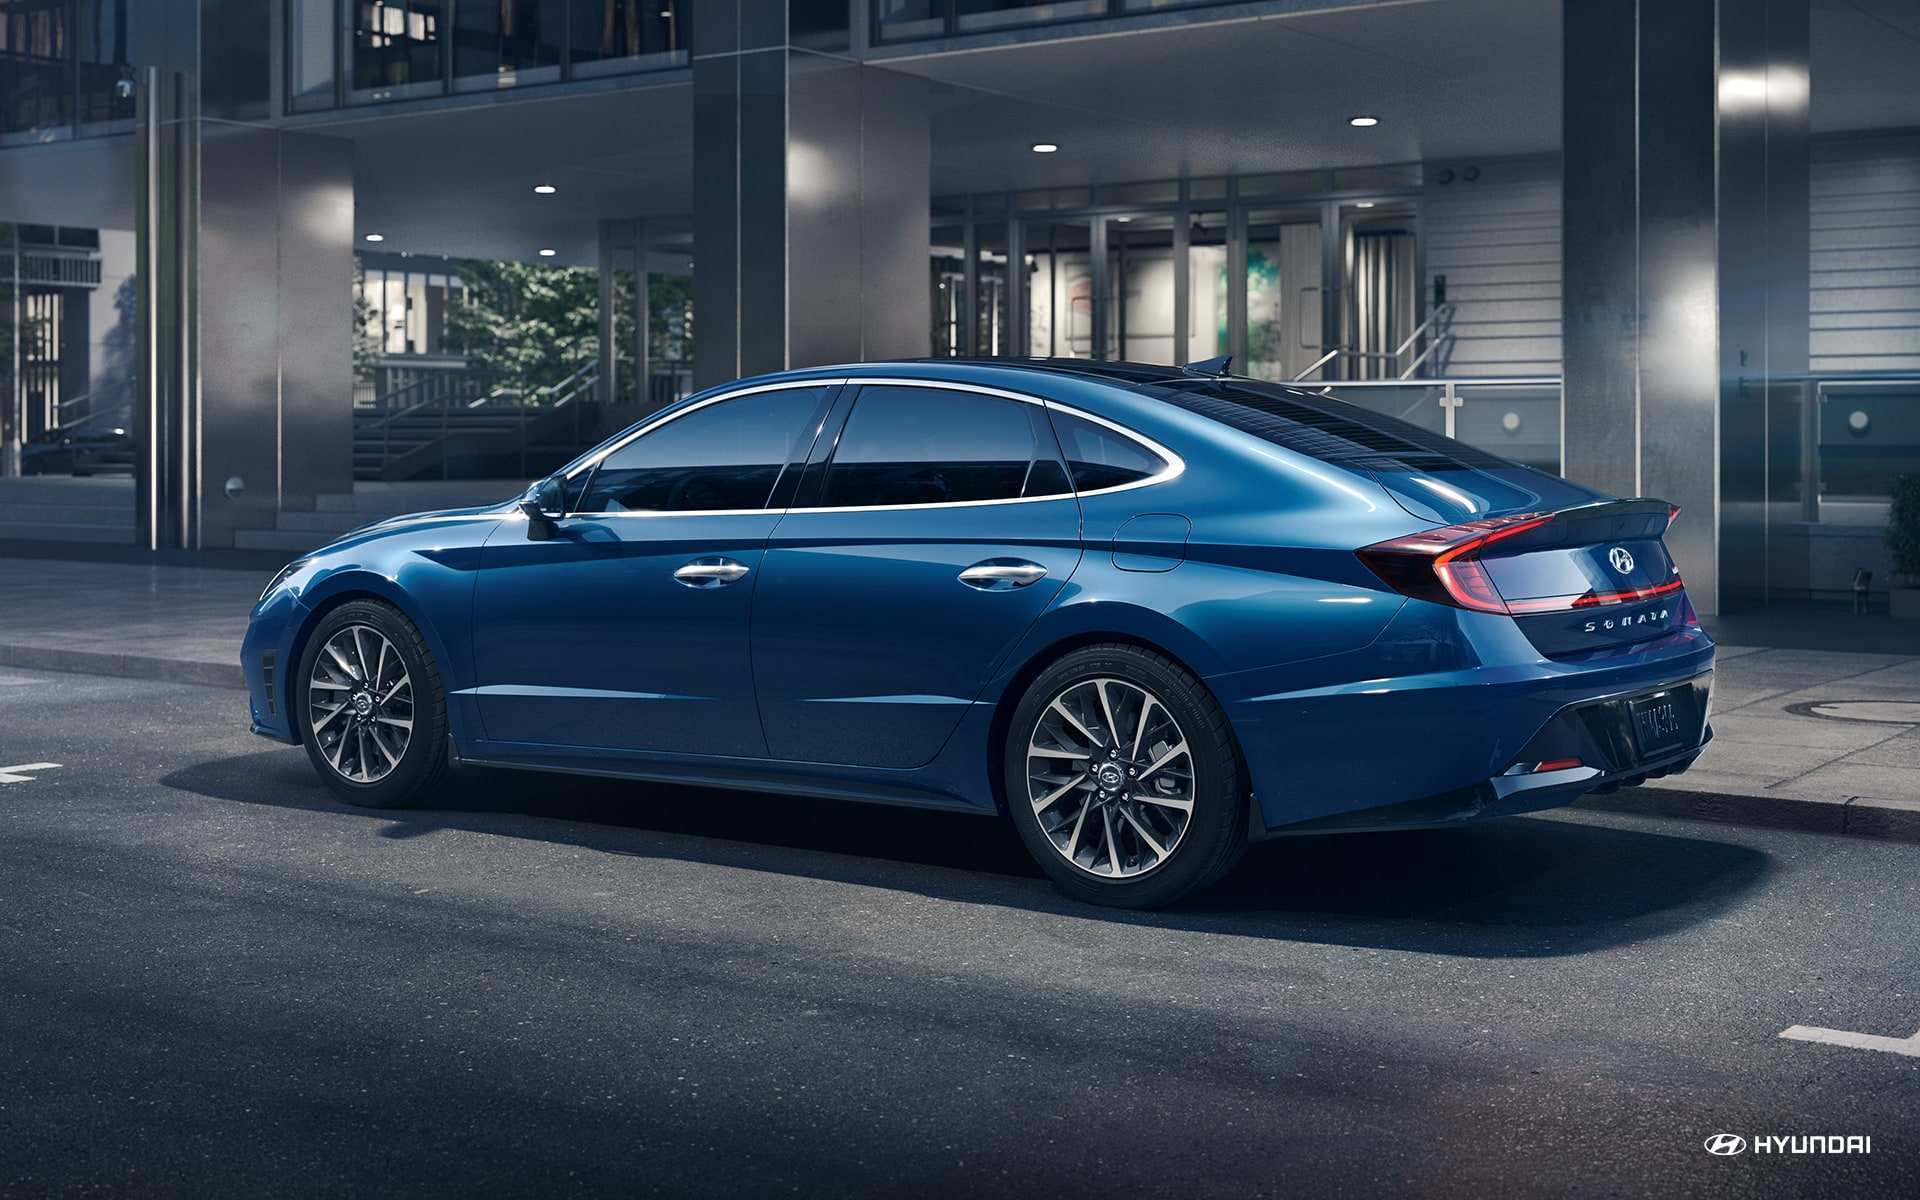 91 Best Review Price Of 2020 Hyundai Sonata Research New for Price Of 2020 Hyundai Sonata